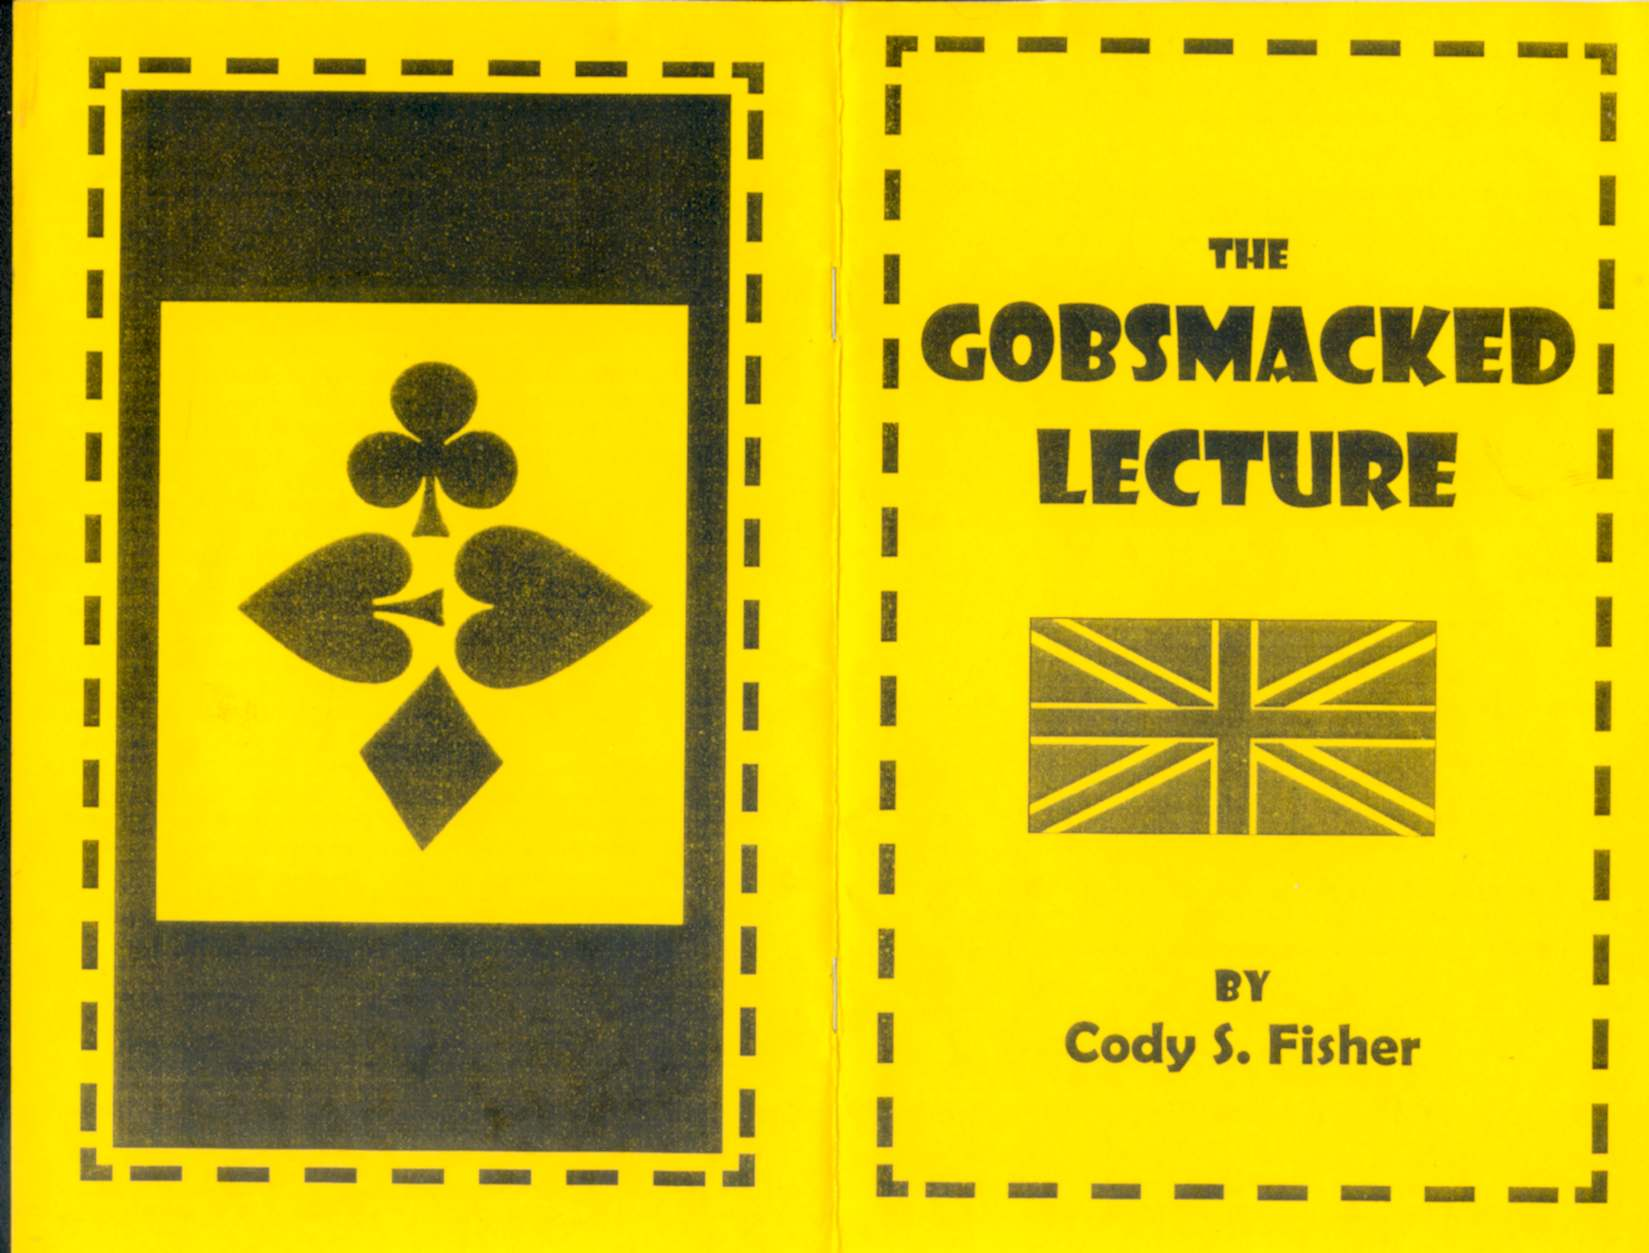 Cody S. Fisher - The Gobsmacked Lecture